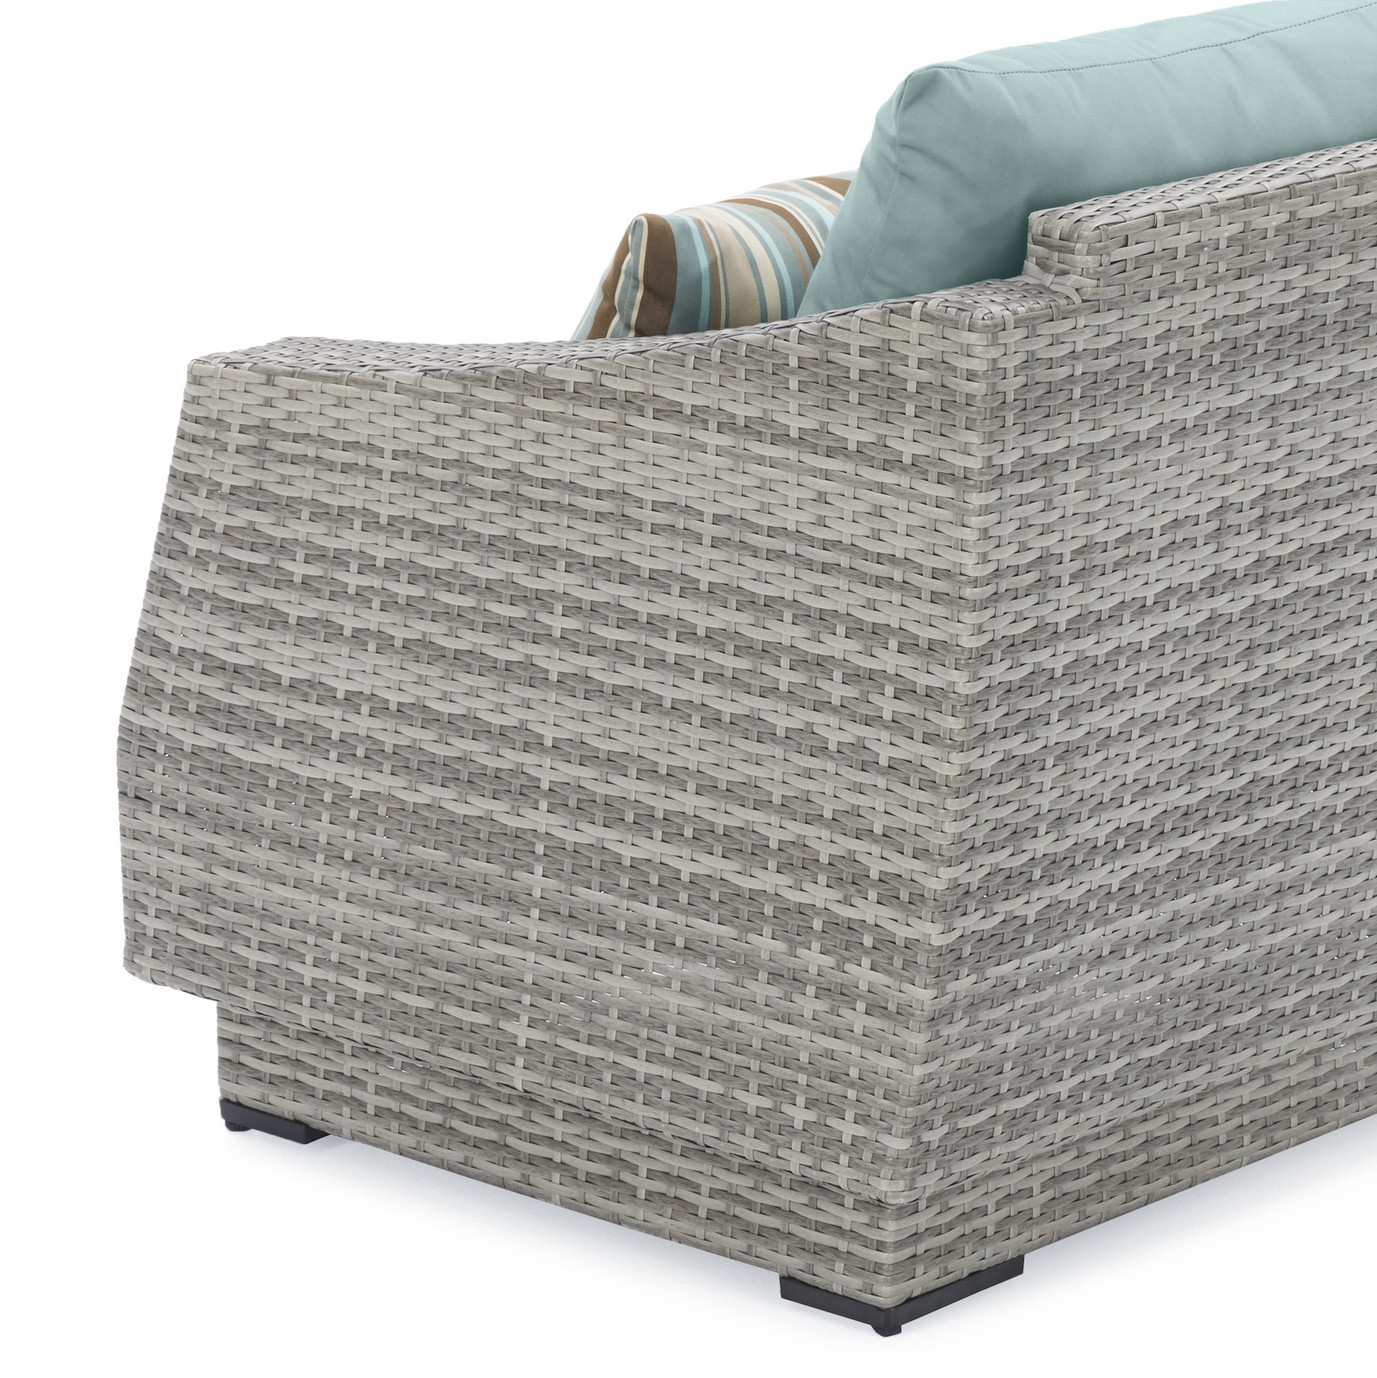 Cannes™ Loveseat and Ottoman - Bliss Blue